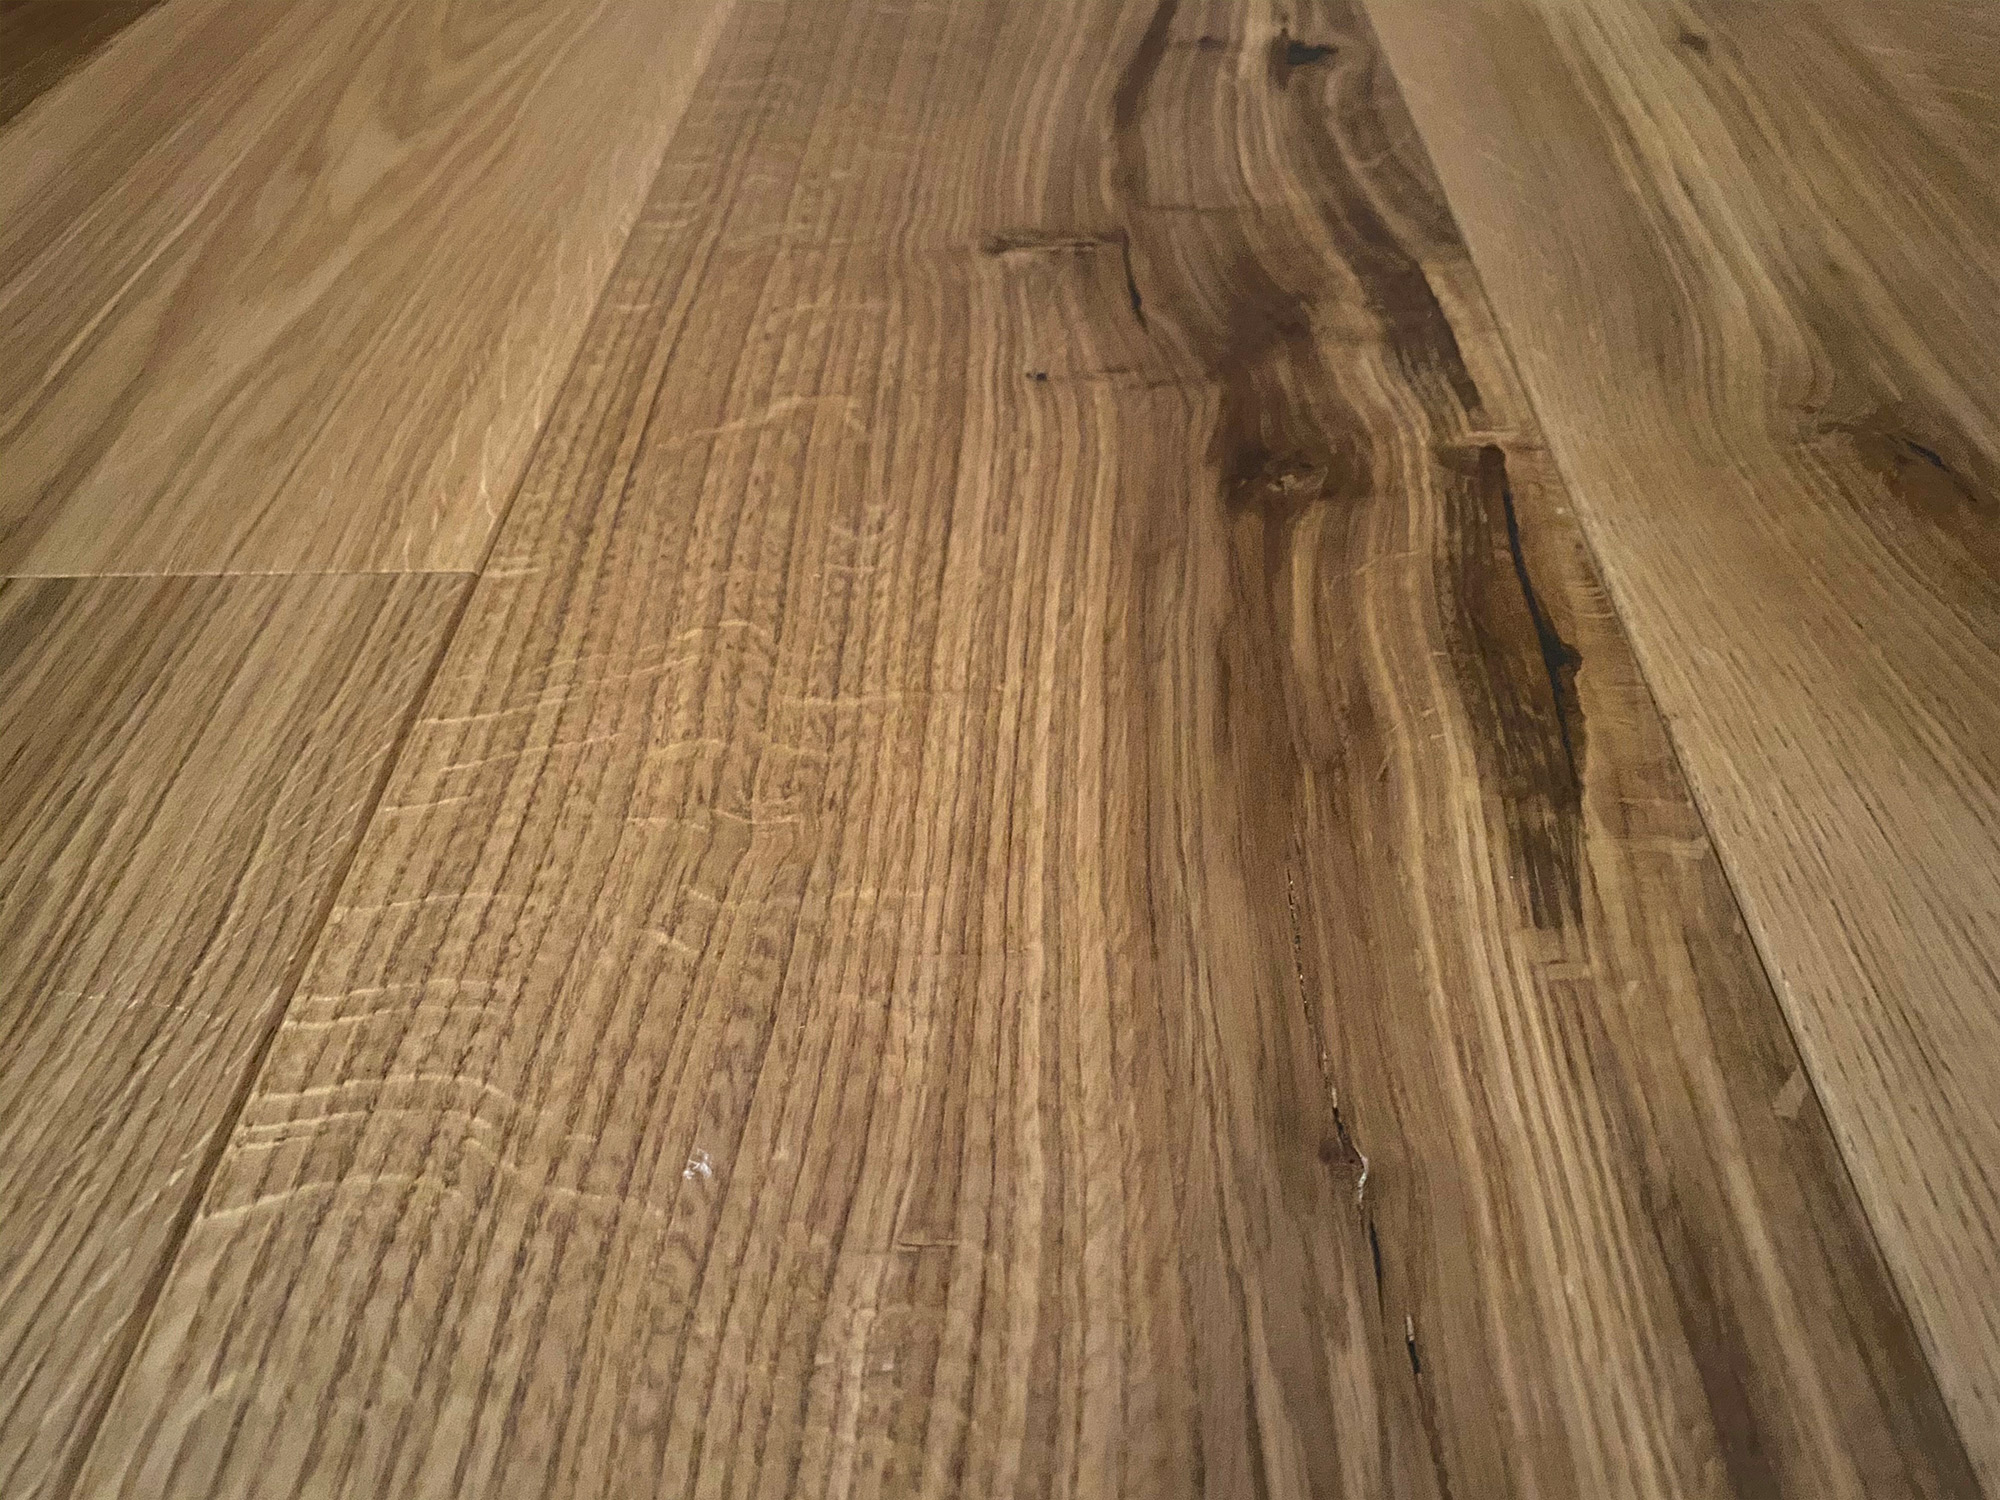 Honey coloured oak flooring